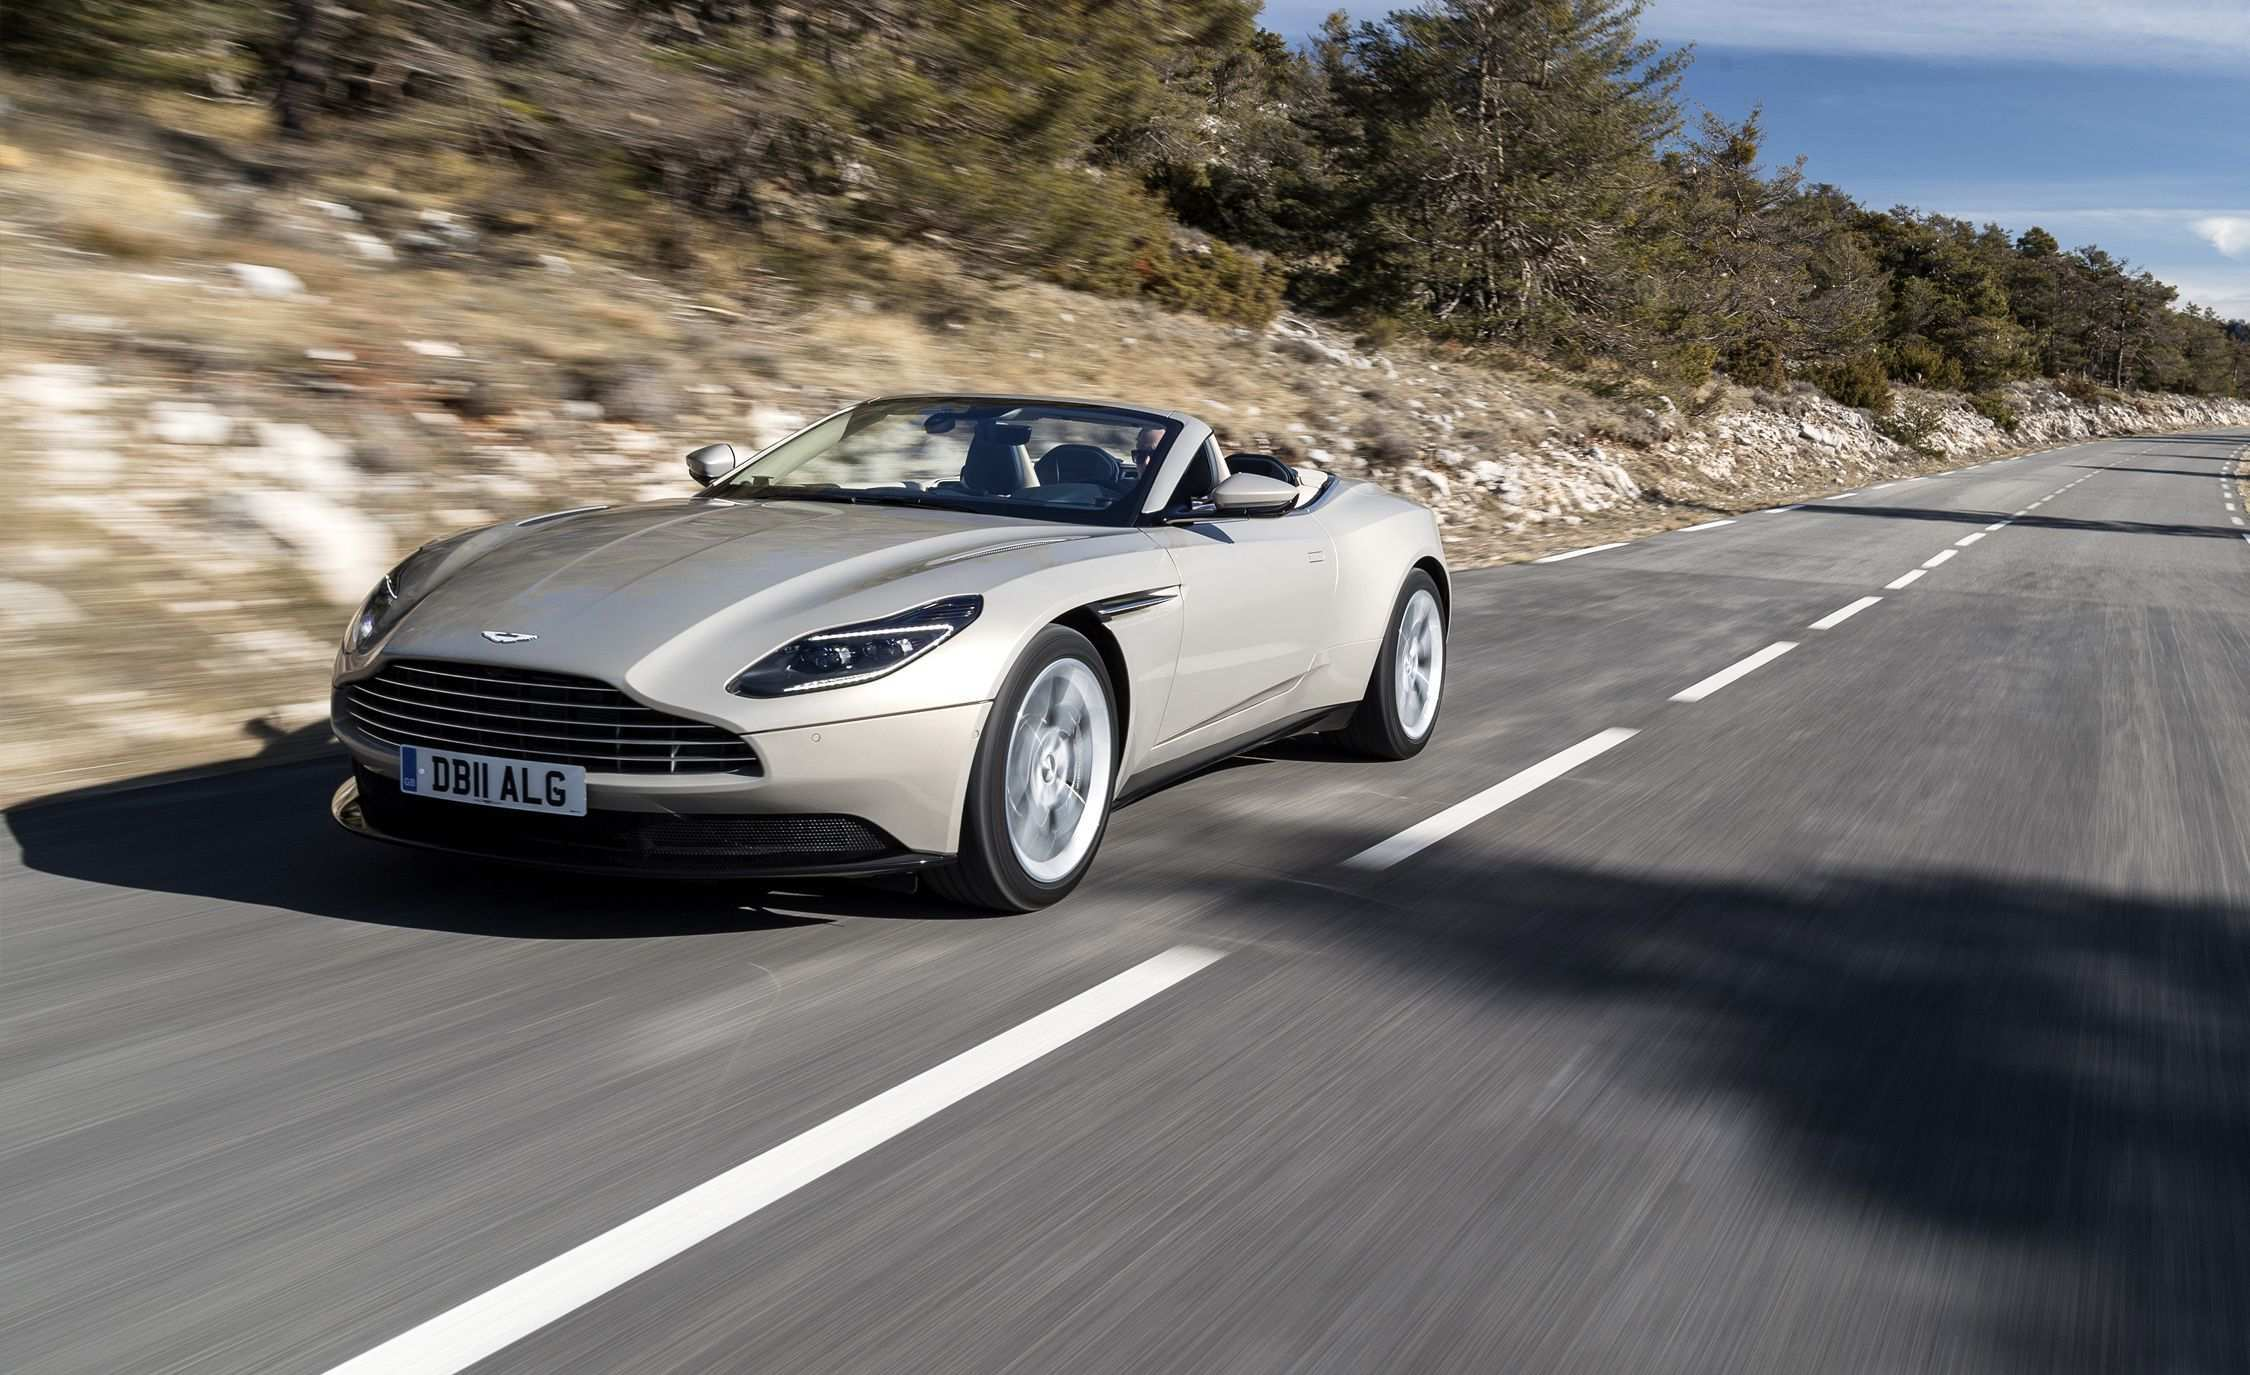 26 Great 2019 Aston Martin Db11 Volante Specs and Review for 2019 Aston Martin Db11 Volante